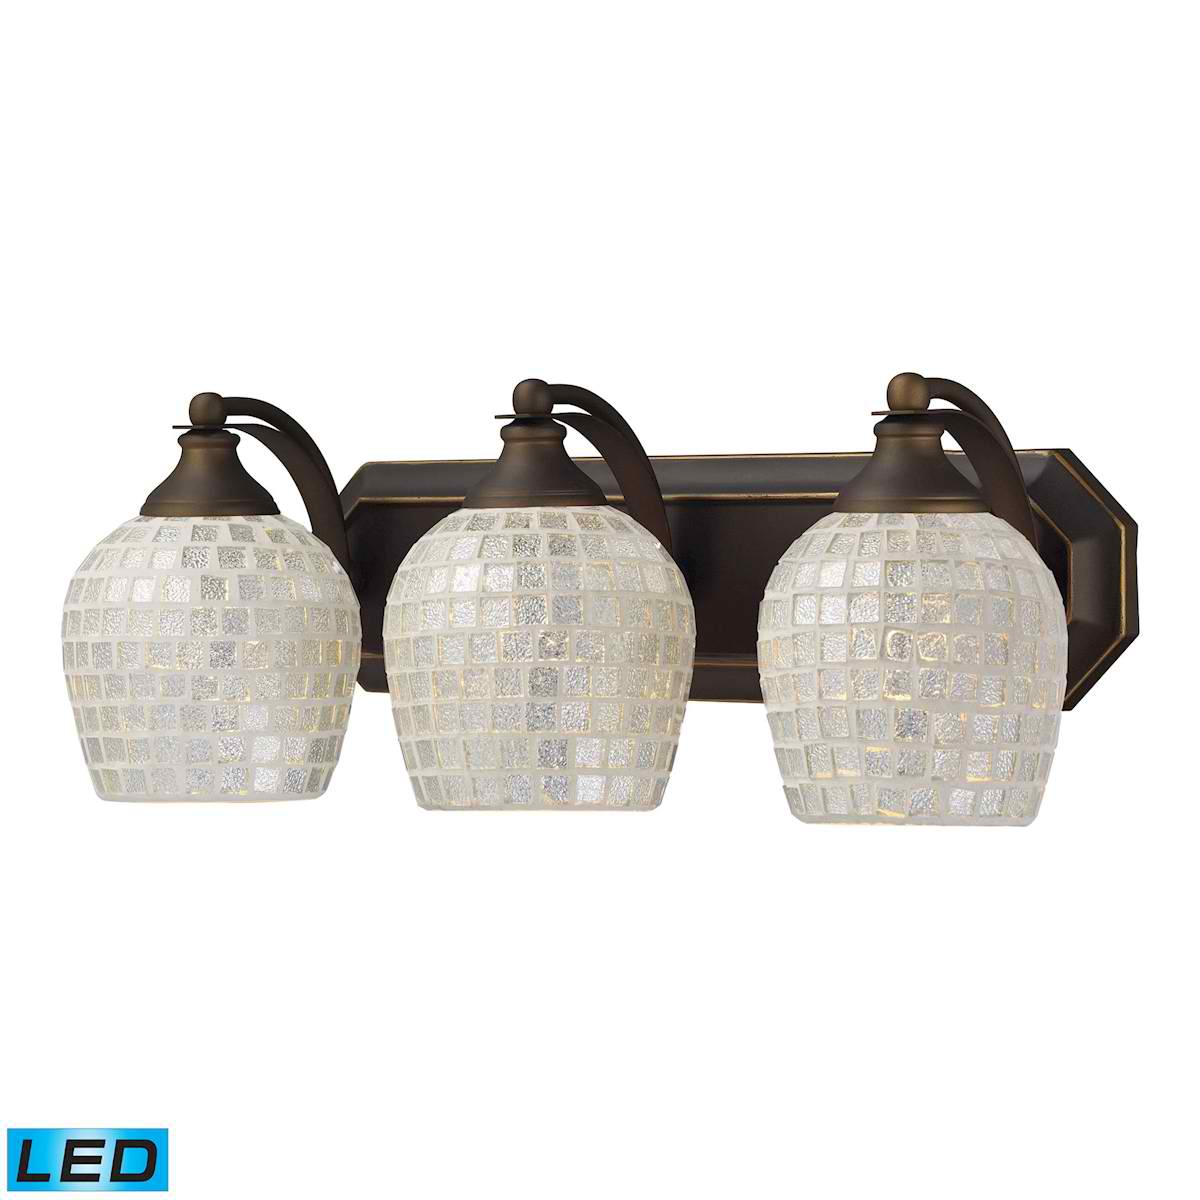 3 Light Vanity in Aged Bronze and Silver Mosaic Glass - LED, 800 Lumens (2400 Lumens Total) with Full Scale